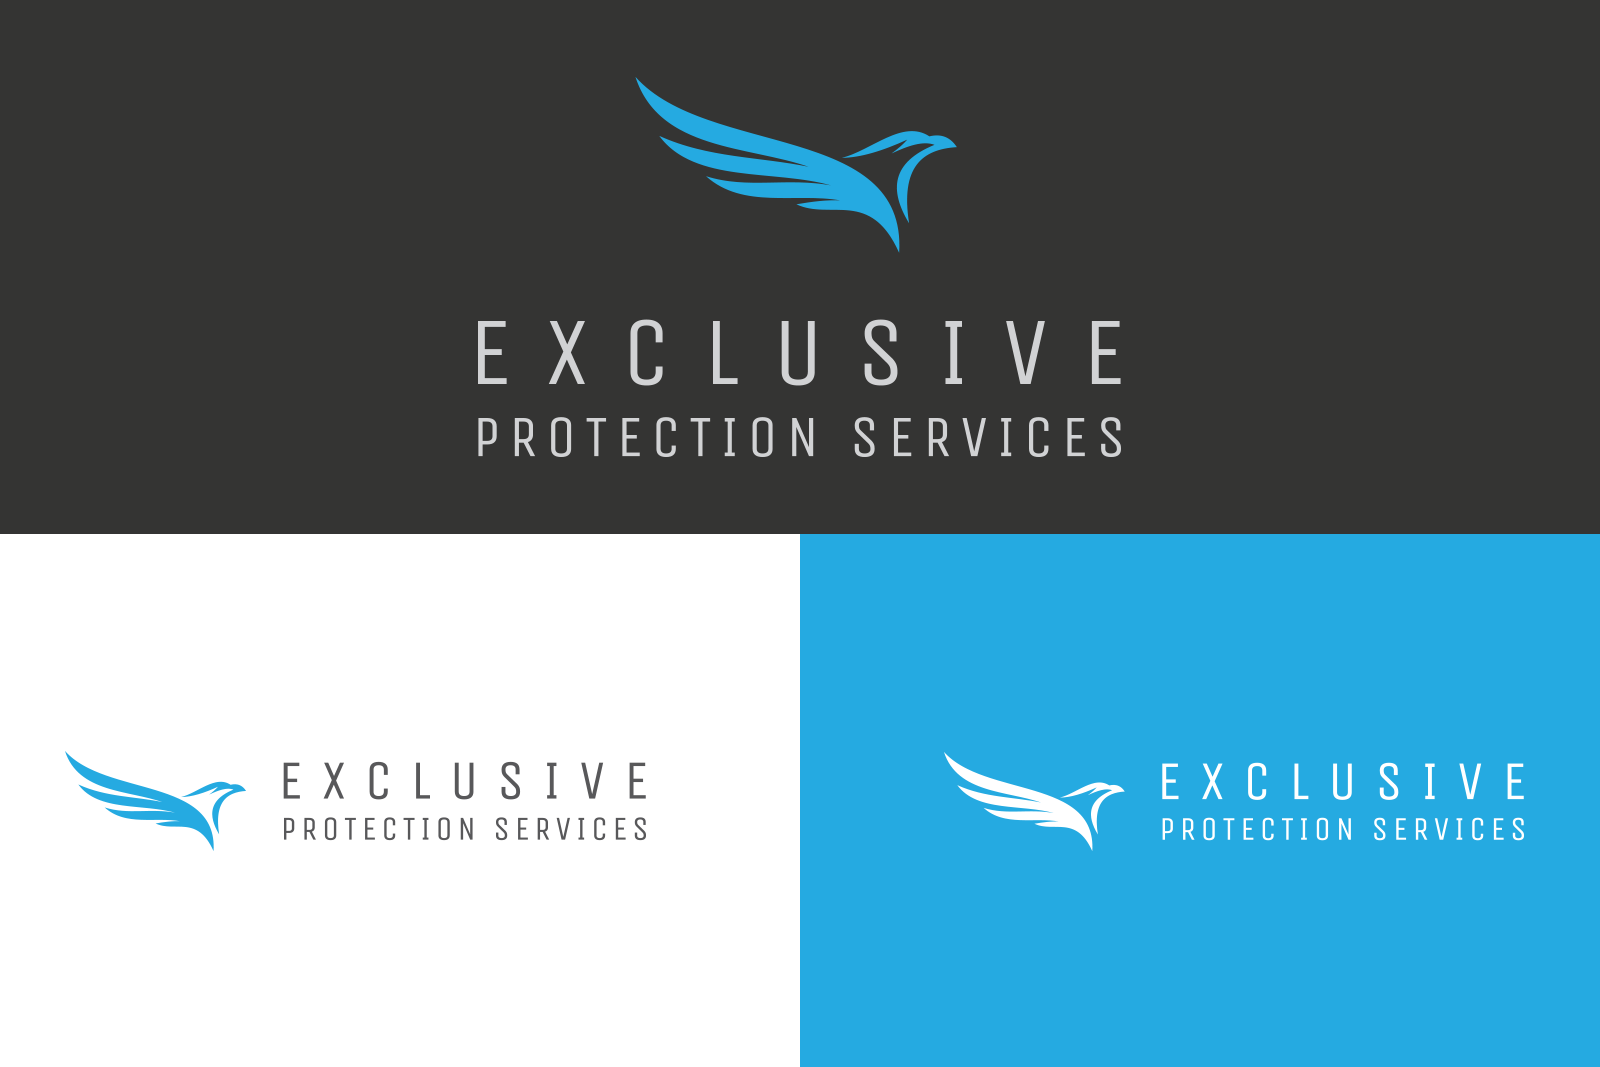 EPS, Exclusive Protection Services, EPS Logo Generations